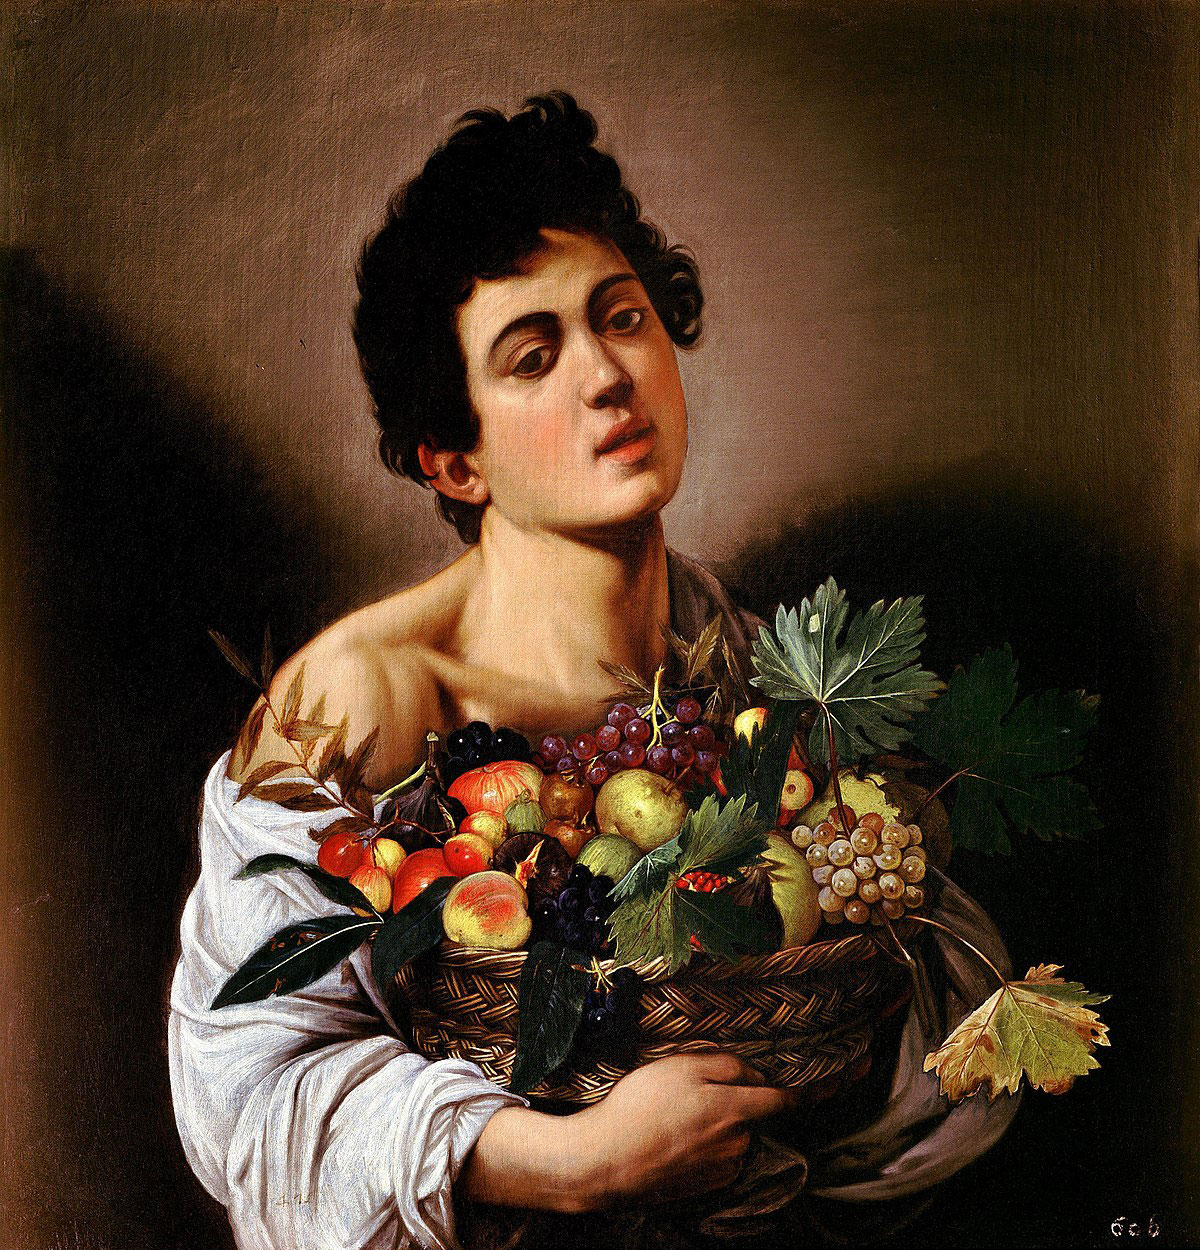 Boy with a basket of fruit /Fanciullo con canestro di frutta/ + Caravaggio *magnifico